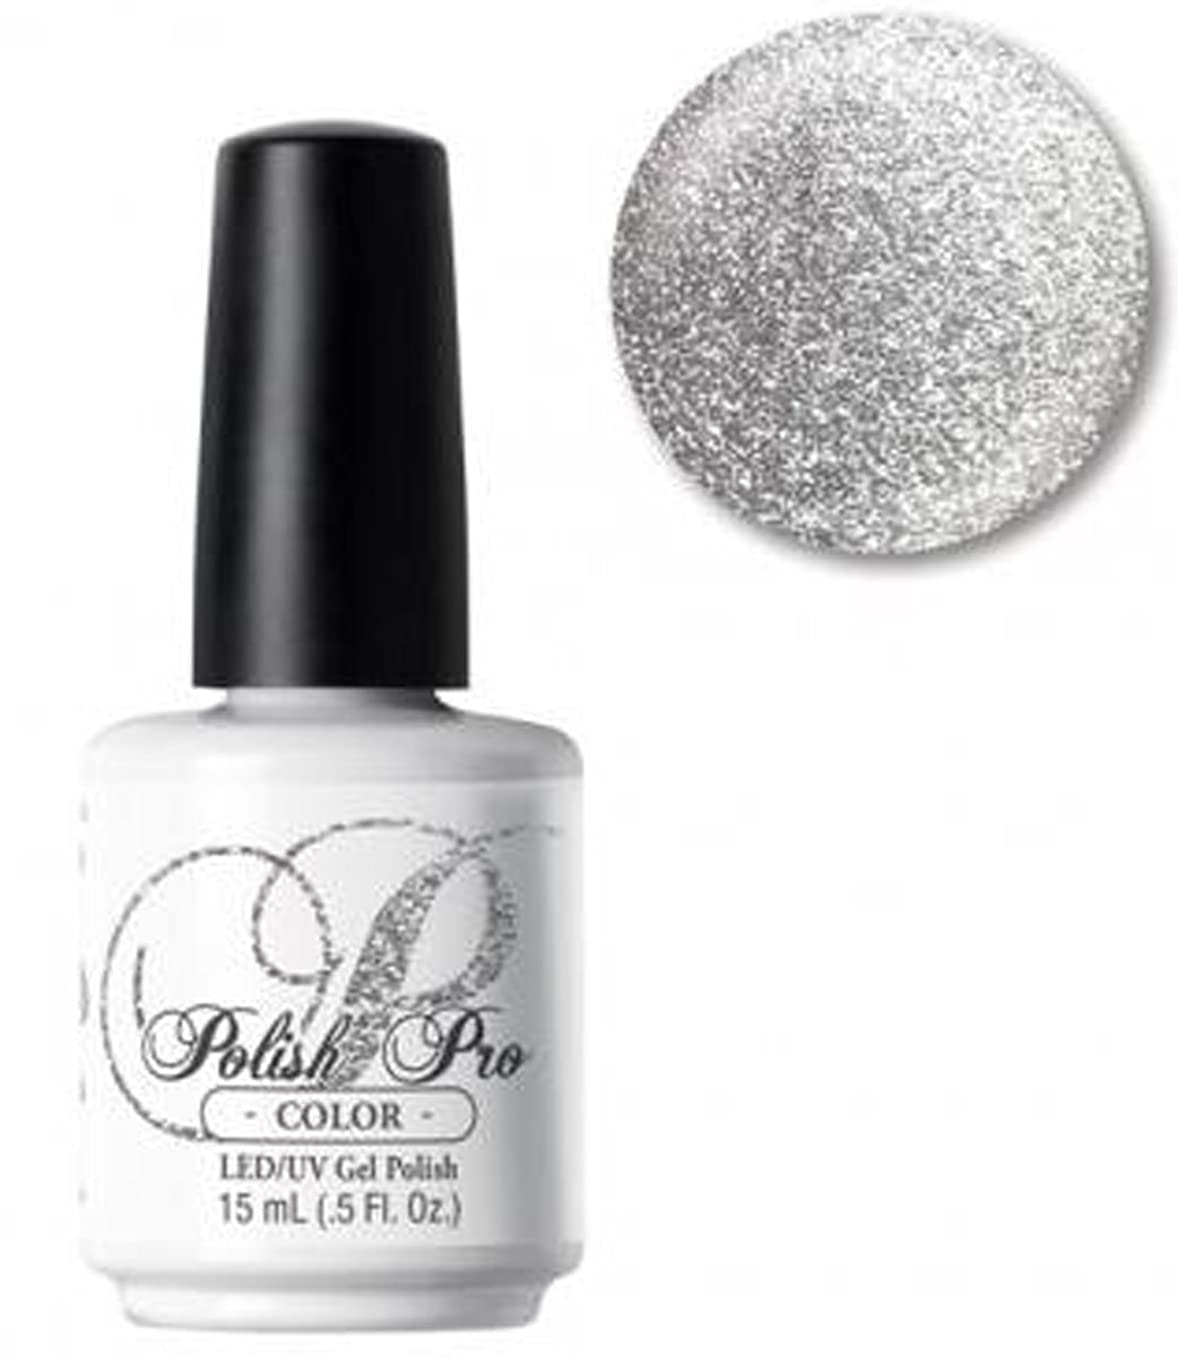 NSI Polish Pro Gel Polish - Cupid's Arrow - 0.5oz / 15ml